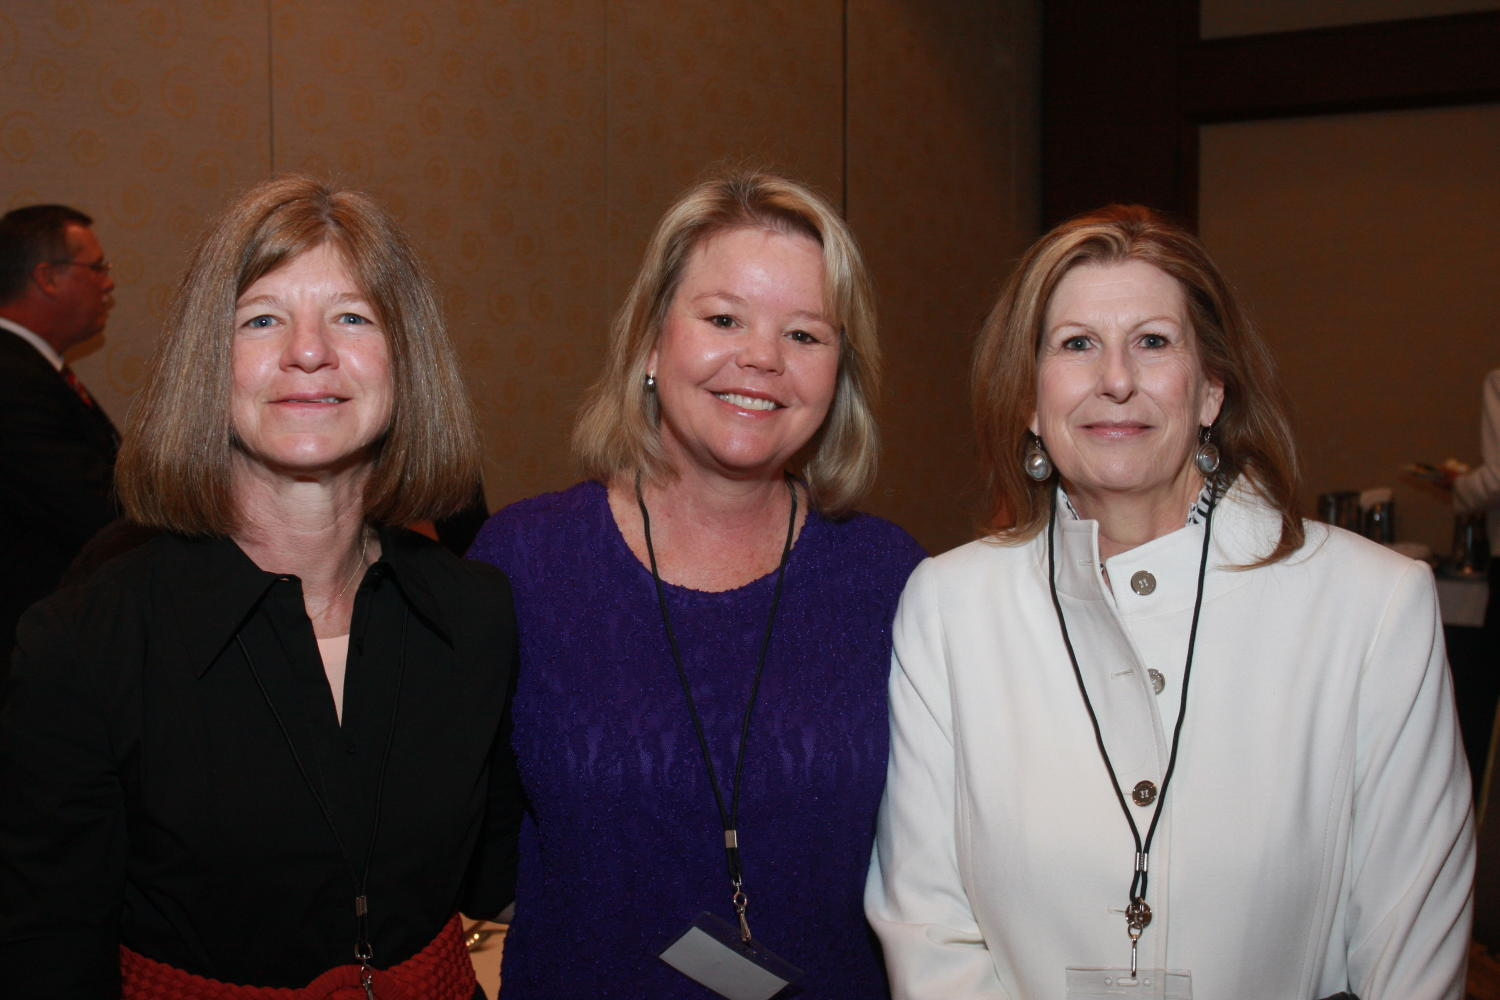 [Three women posing together at TDNA conference], Photograph of three women, one identified as Sharon Grigsby (left) standing together and smiling as their picture is taken during the 2010 Texas Daily Newspaper Association annual meeting held in Houston, Texas.,